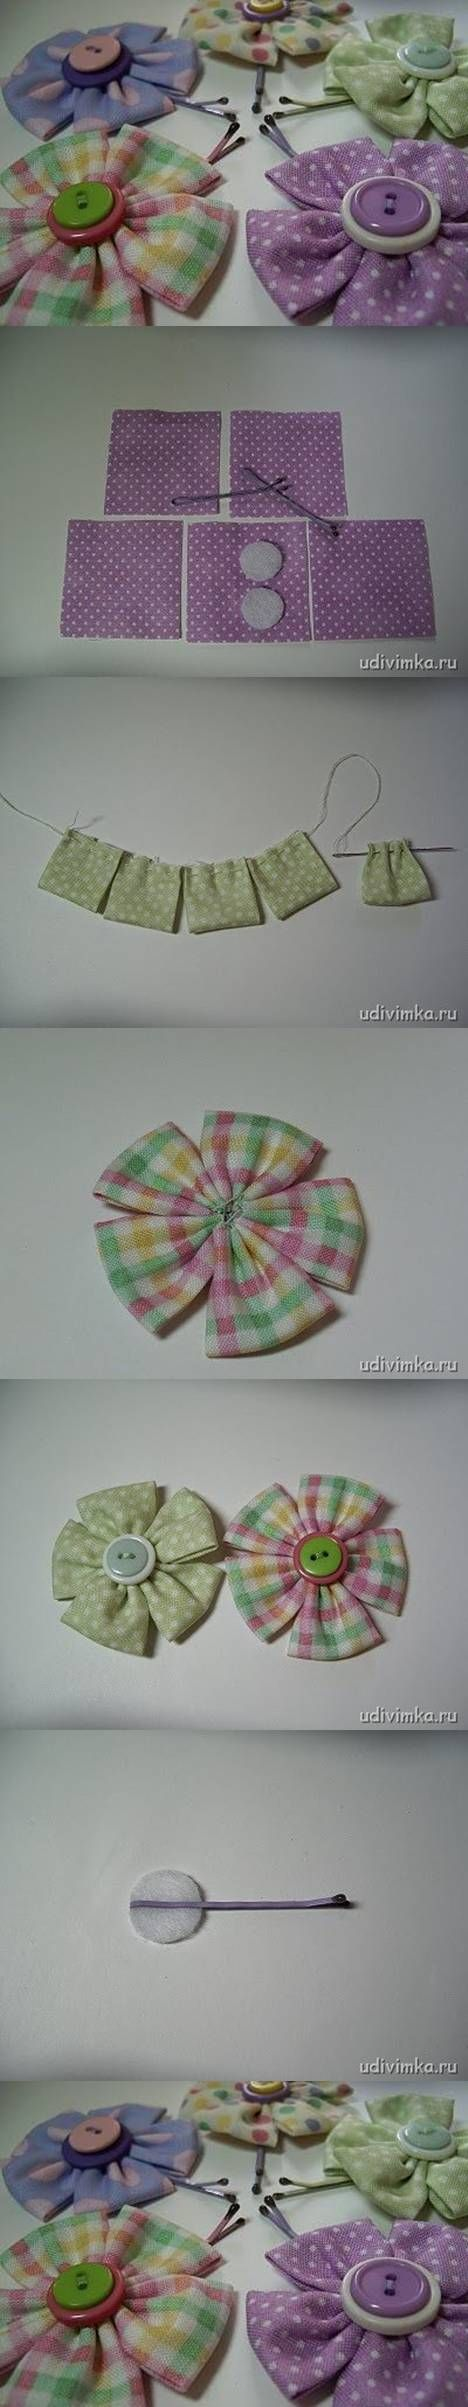 DIY Cute Fabric Flower Hairpin DIY Cute Fabric Flower Hairpin